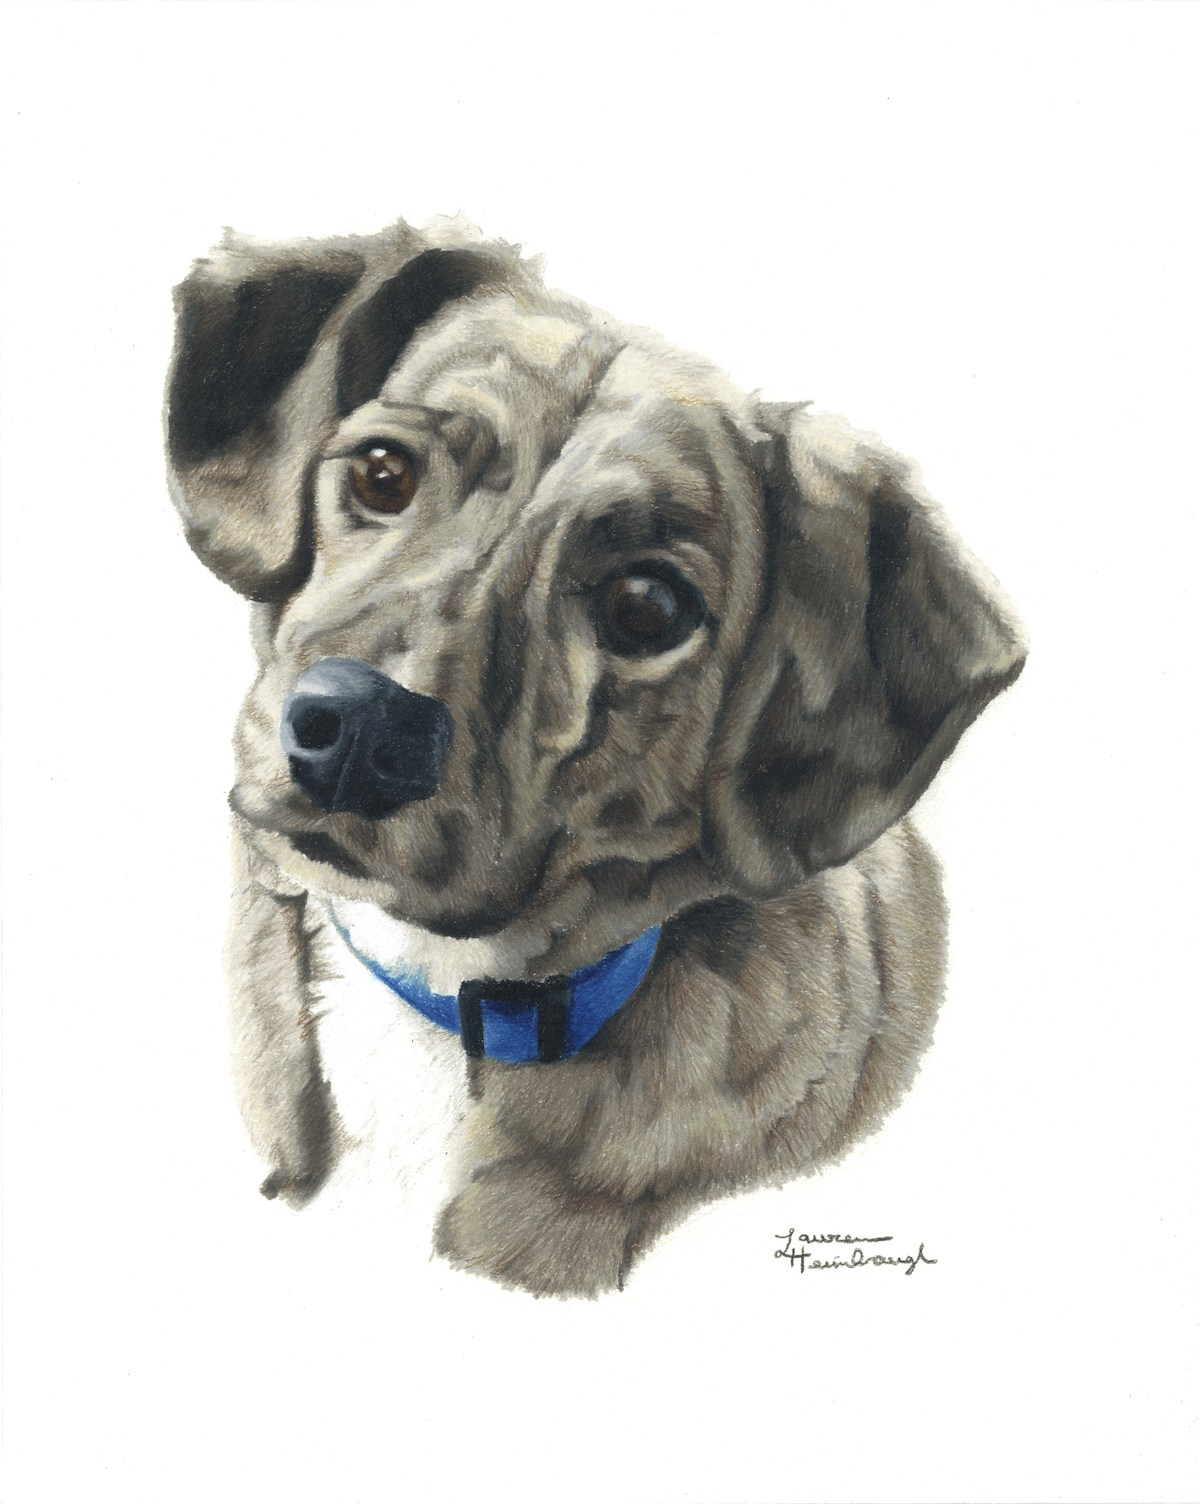 Jack the Mountain Cur (2013)